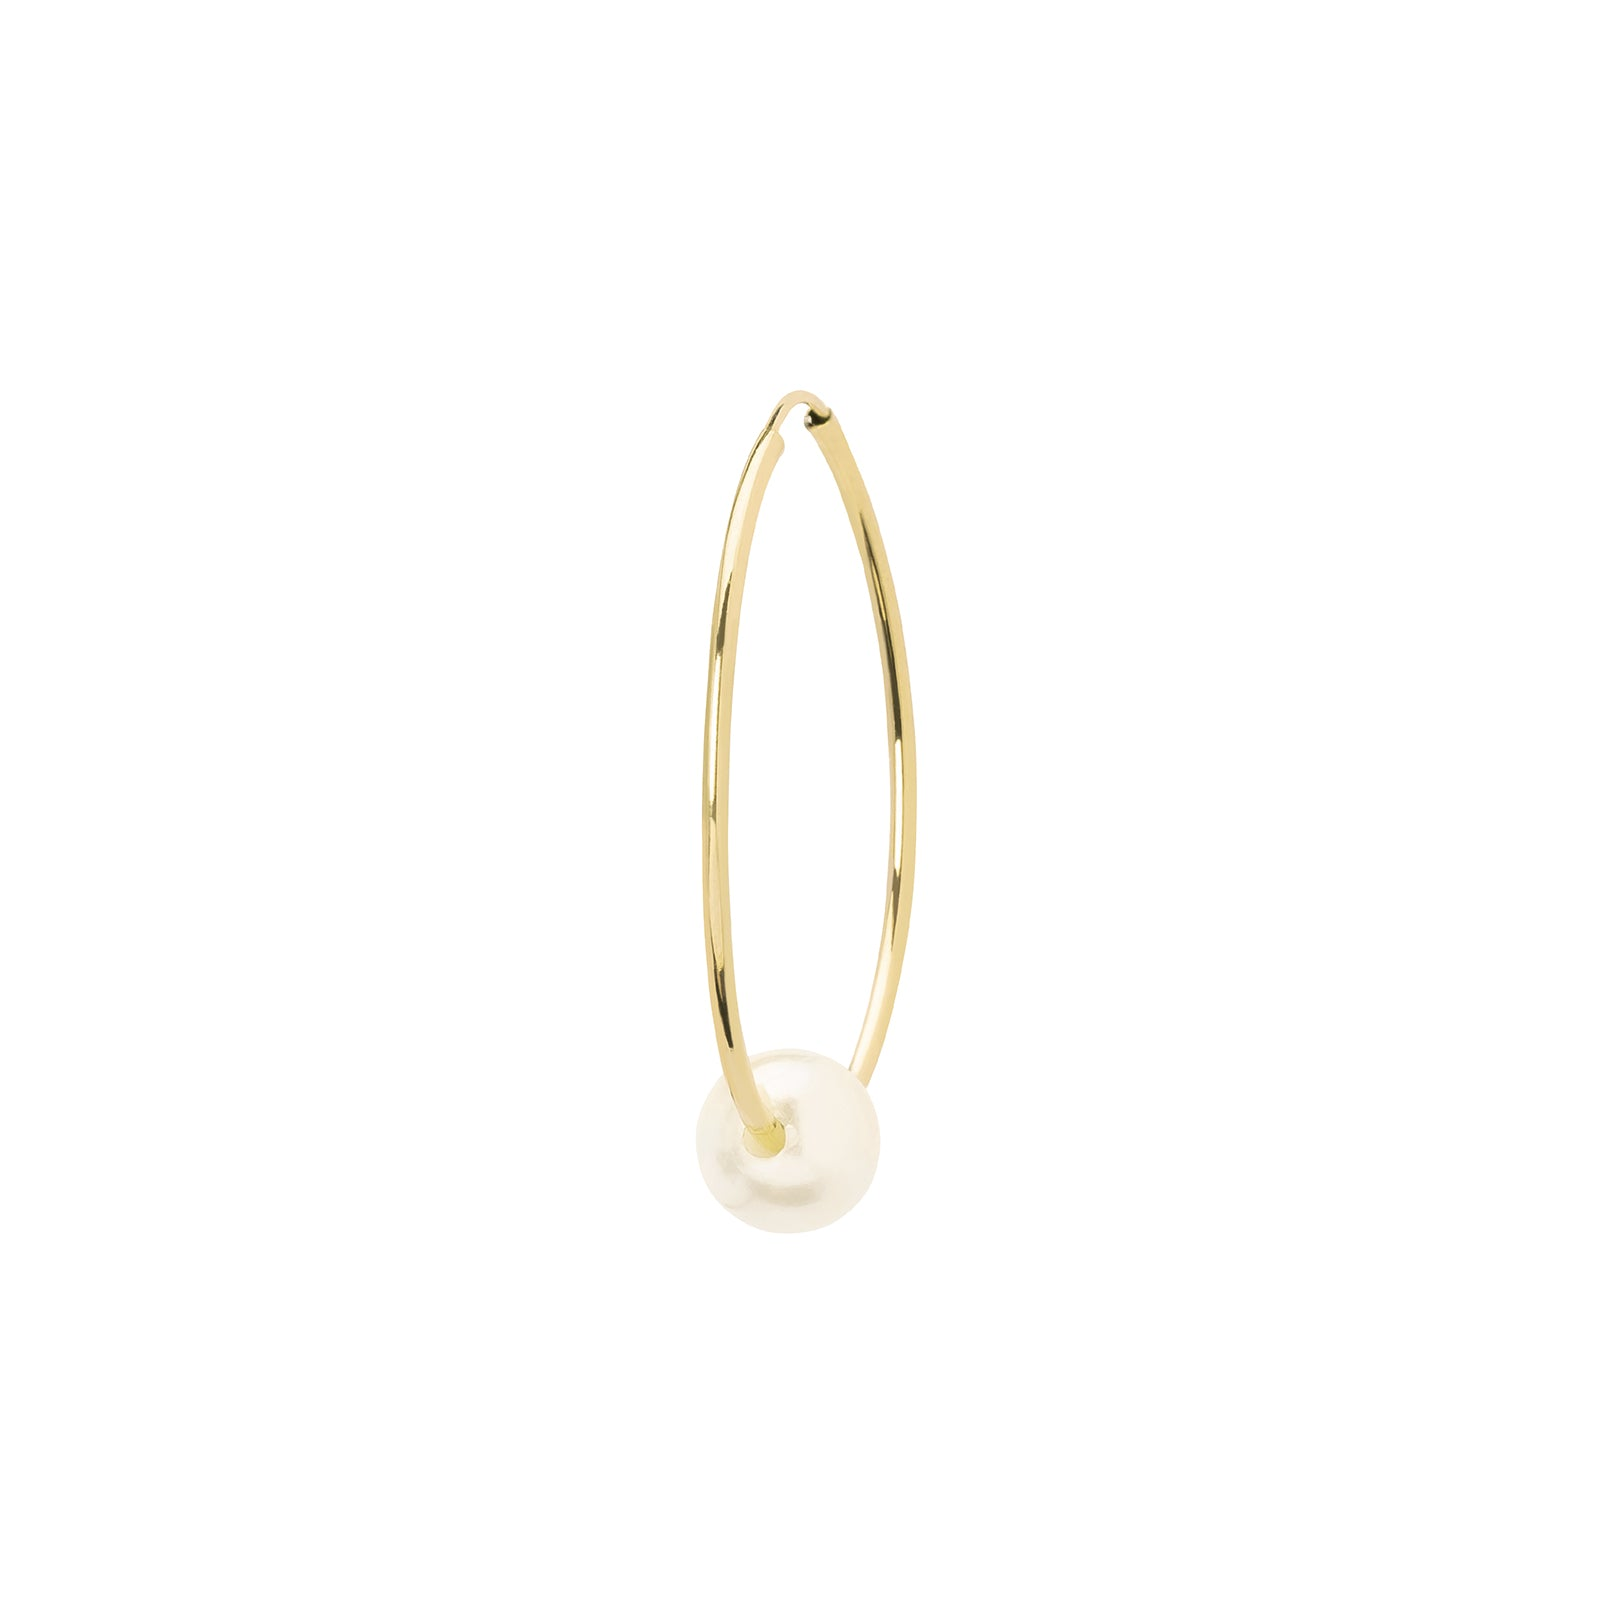 Gabriela Artigas & Company Cosmos Pearl Hoop - Yellow Gold 27mm - Earrings - Broken English Jewelry